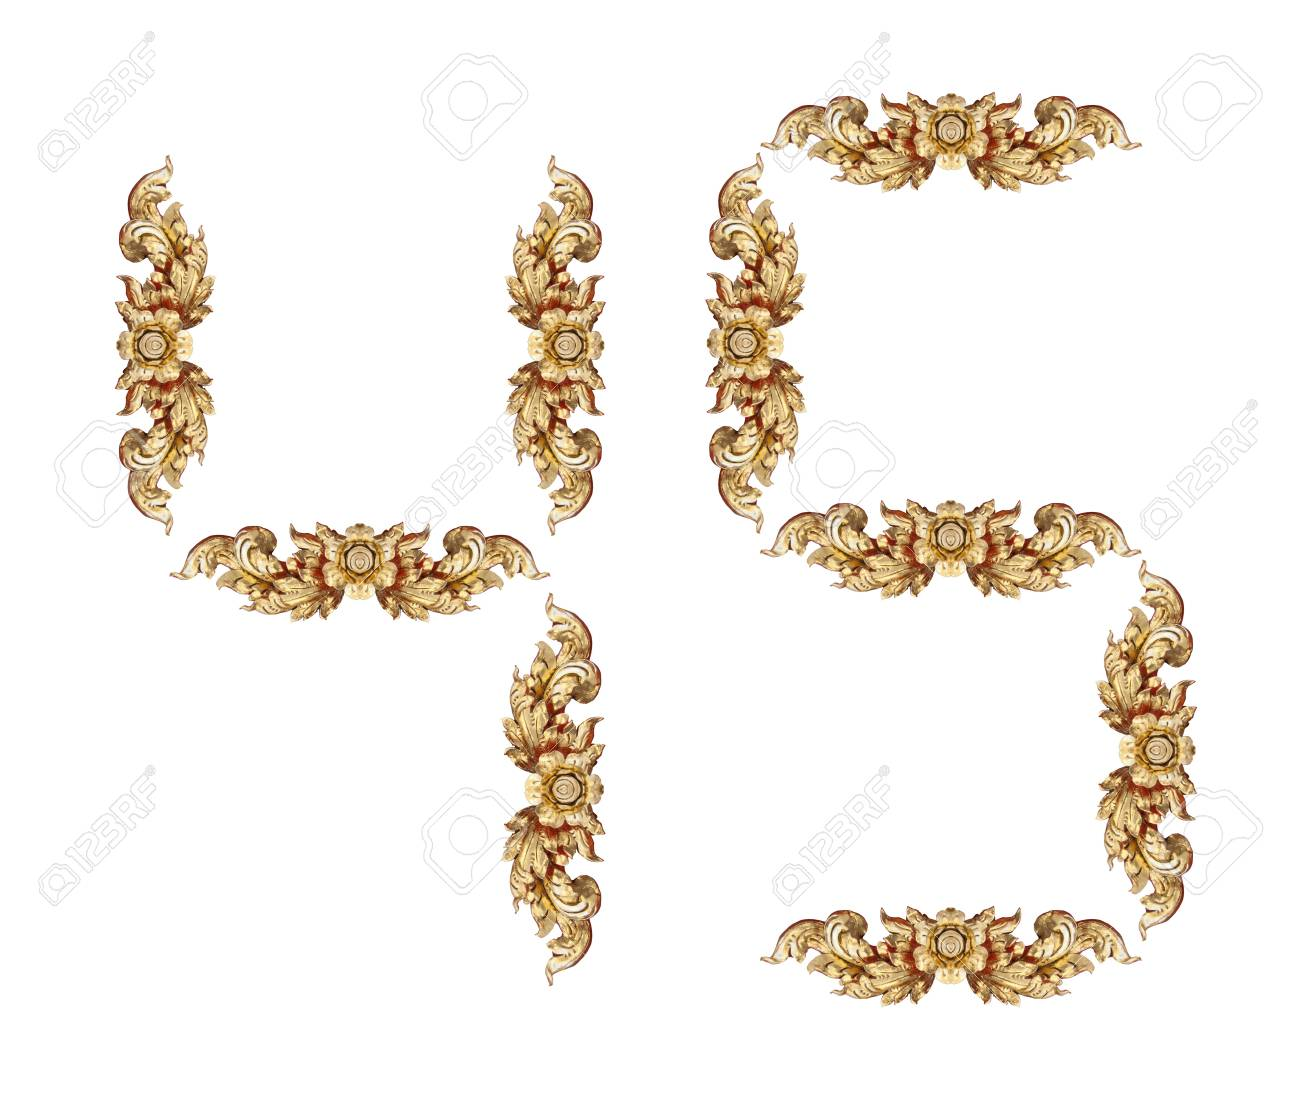 Vintage number on white background Stock Photo - 17907914